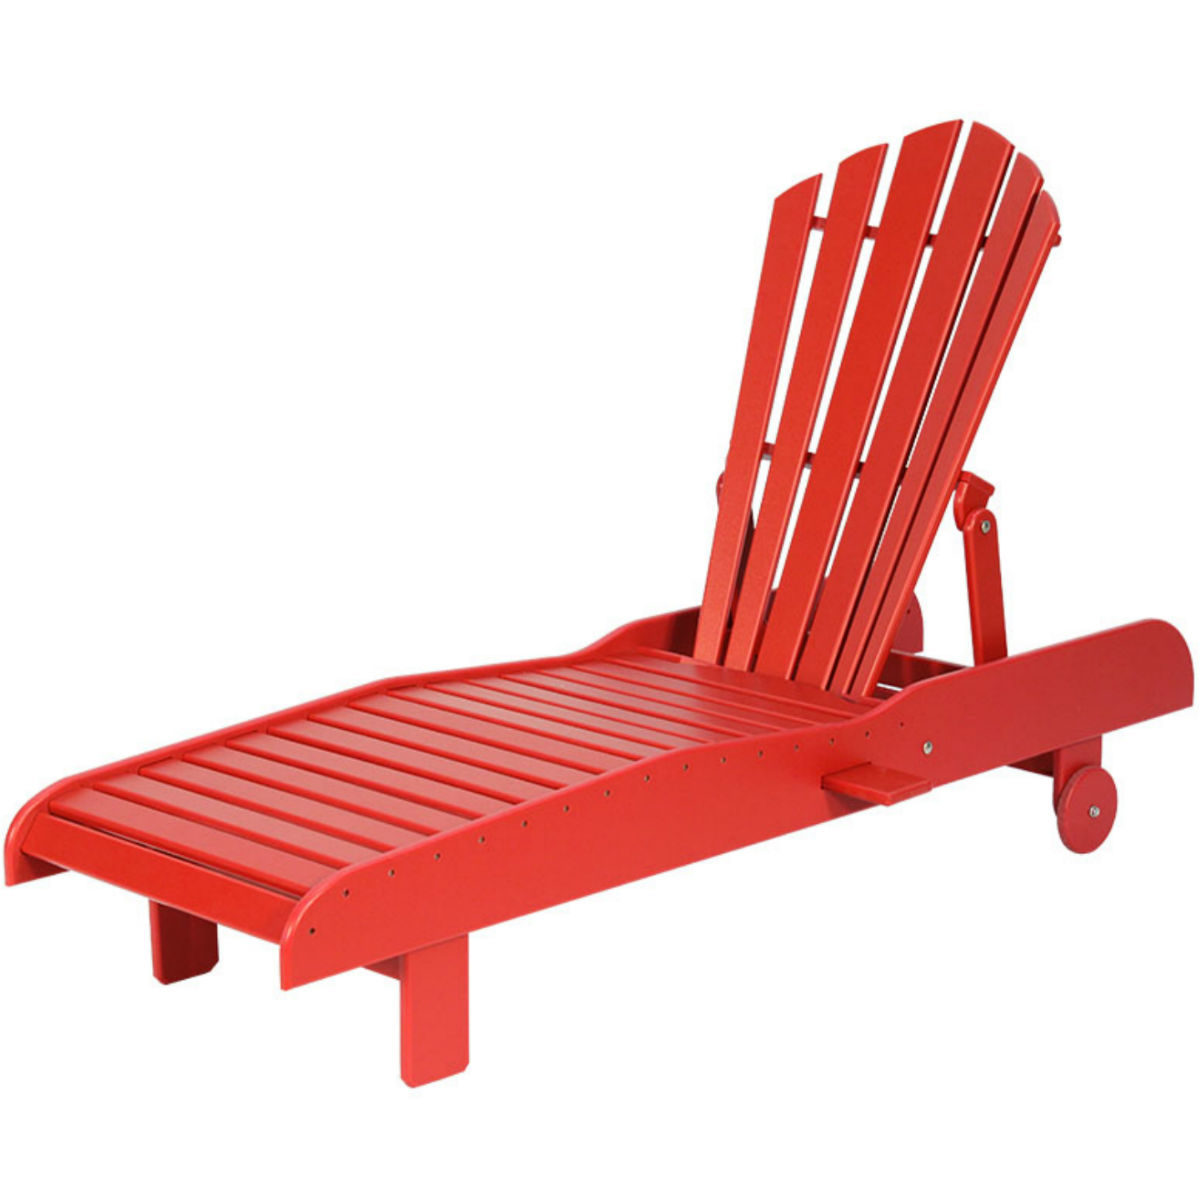 Shae Springs Lounge Chair - Deep Red